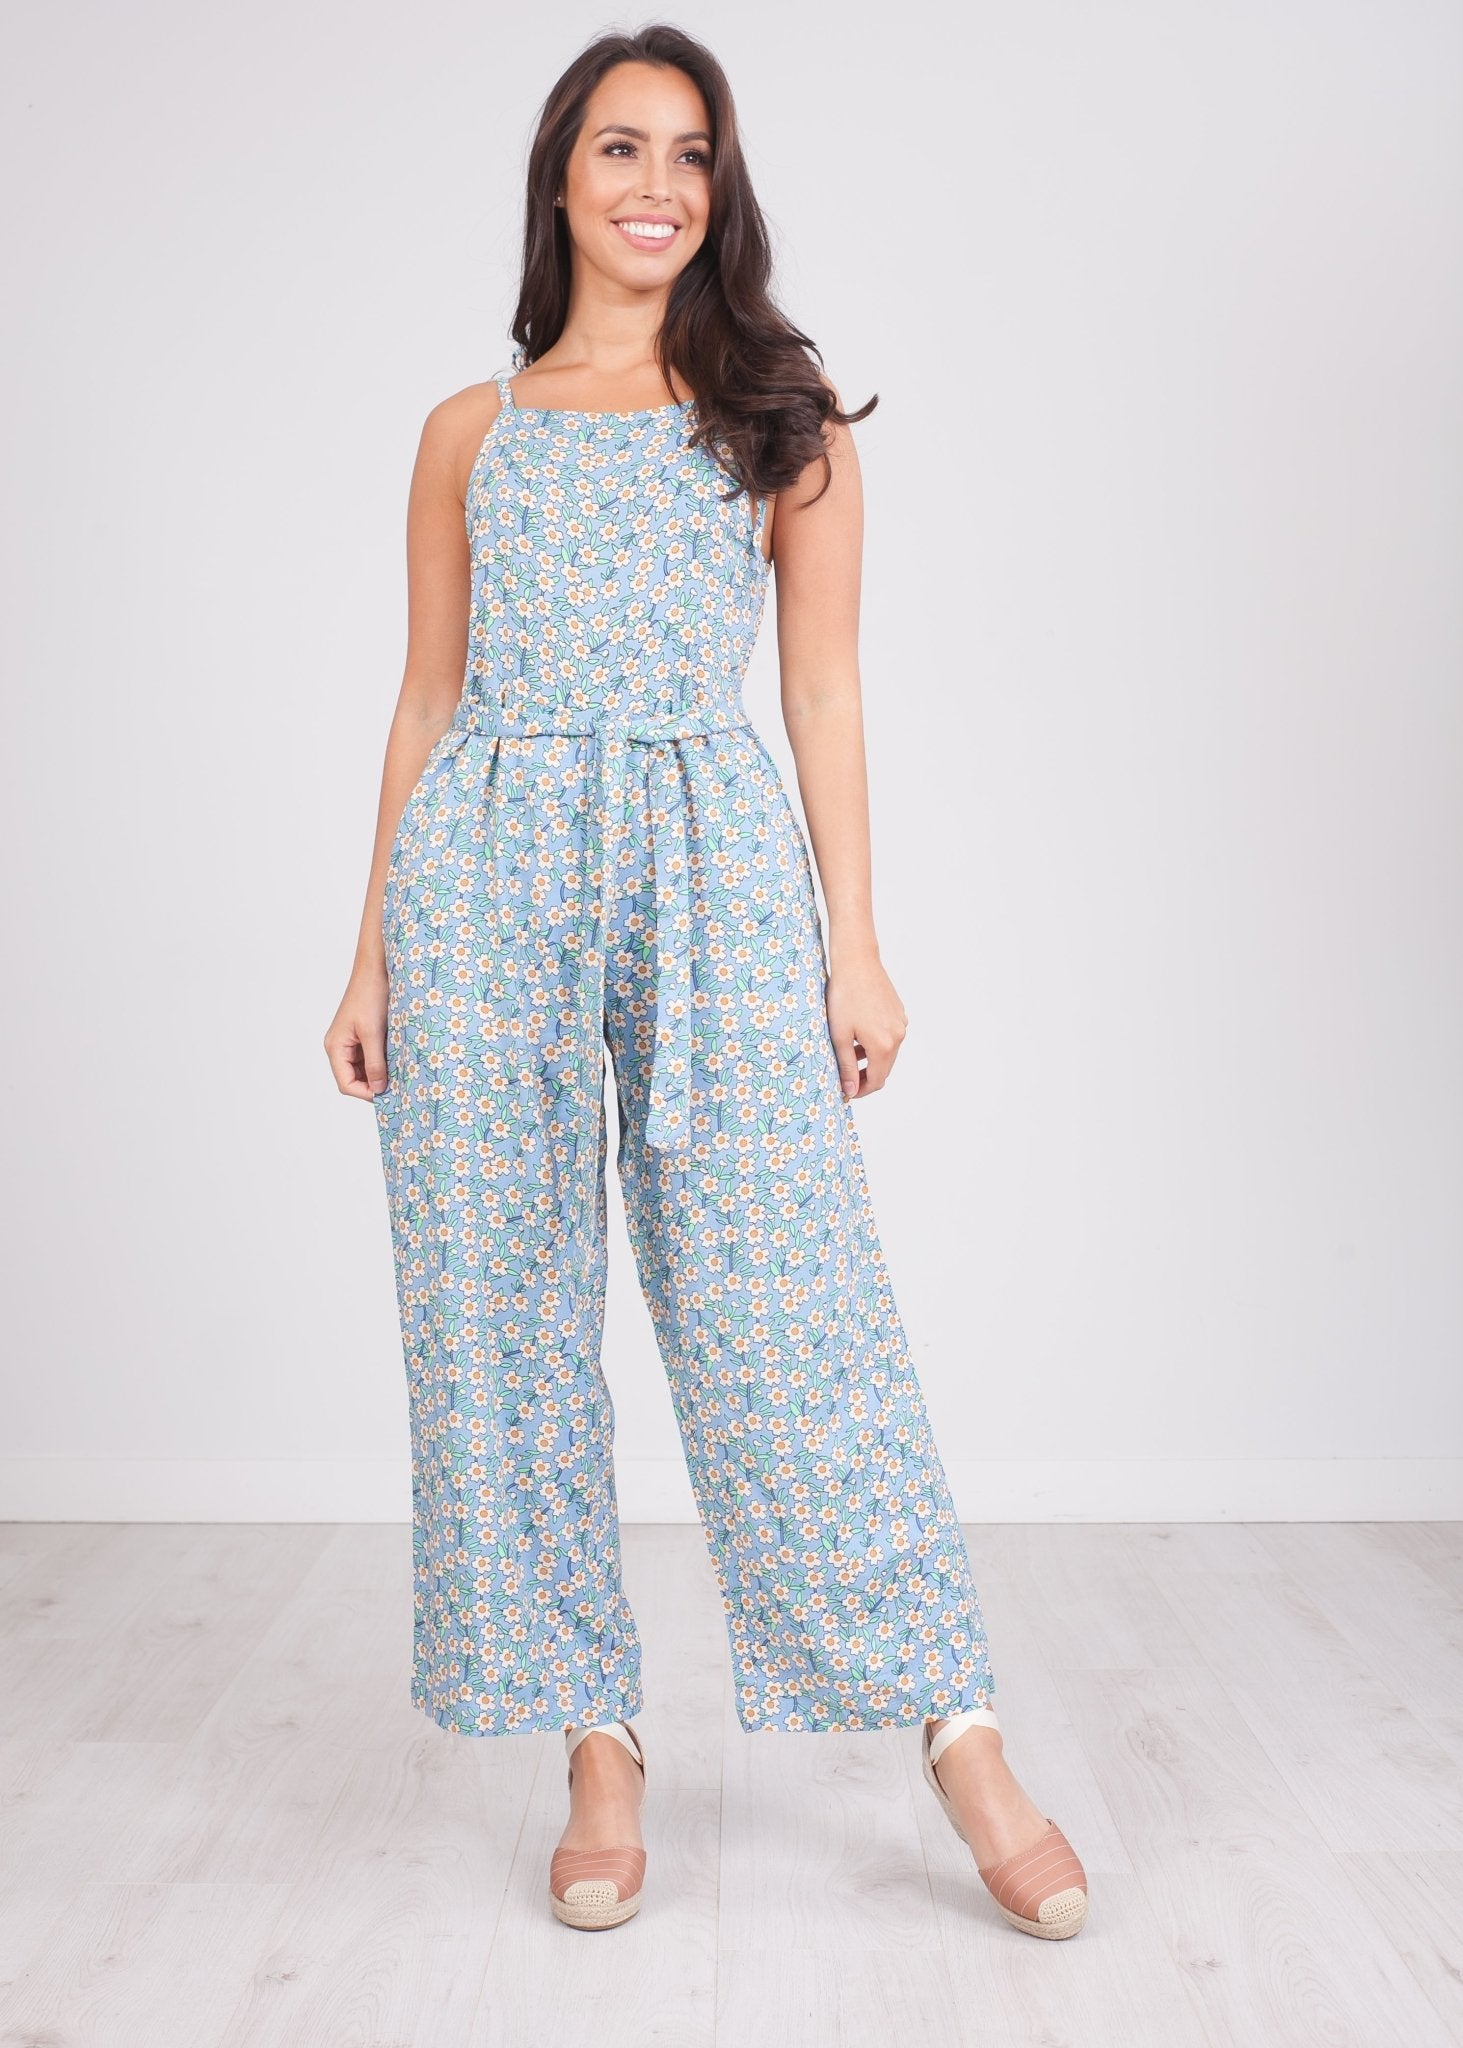 Frankie Blue Floral Jumpsuit - The Walk in Wardrobe